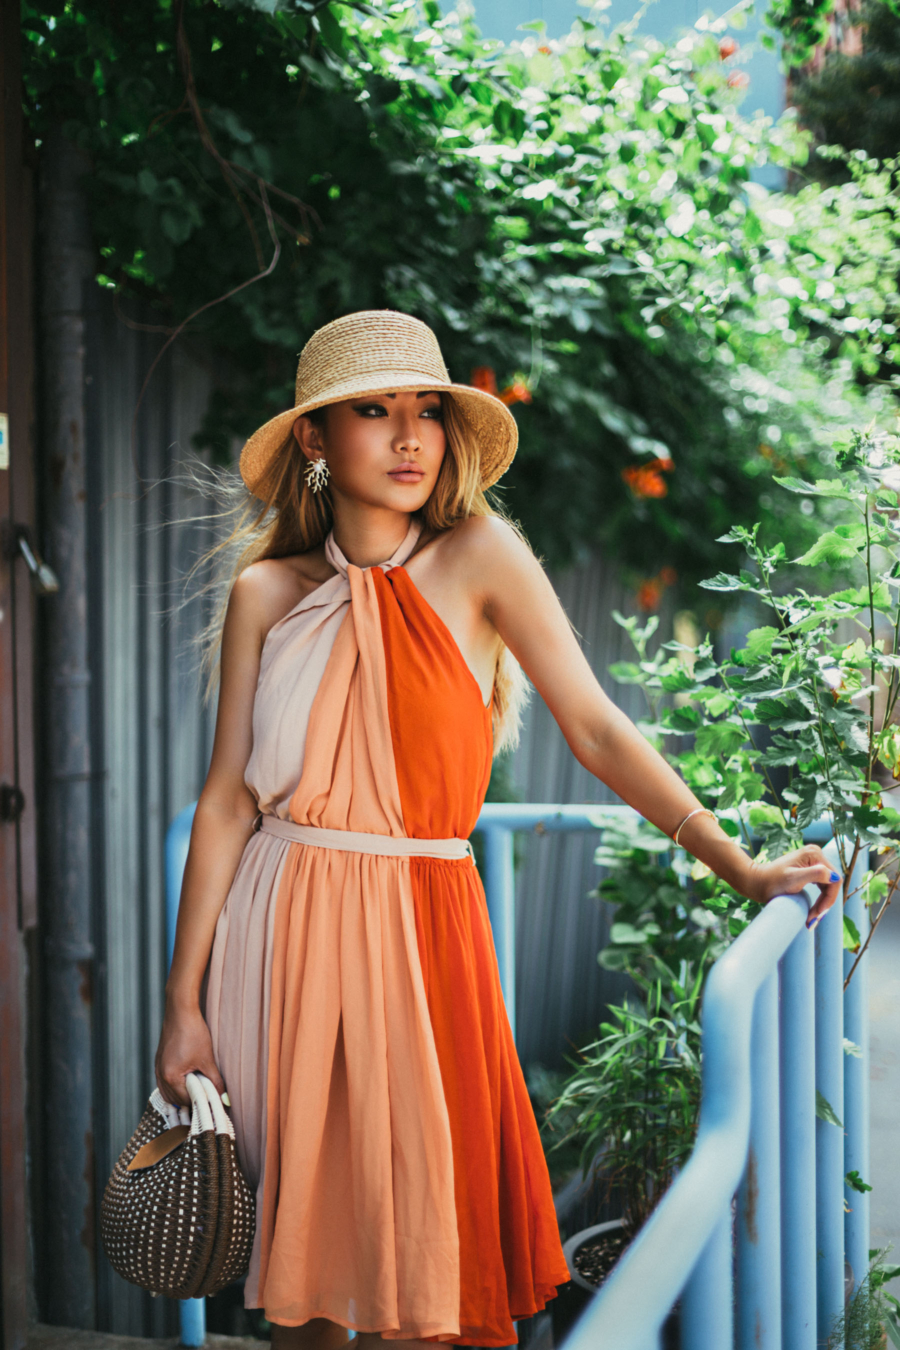 French Connection - Perfect Summer Dress // NotJessFashion.com